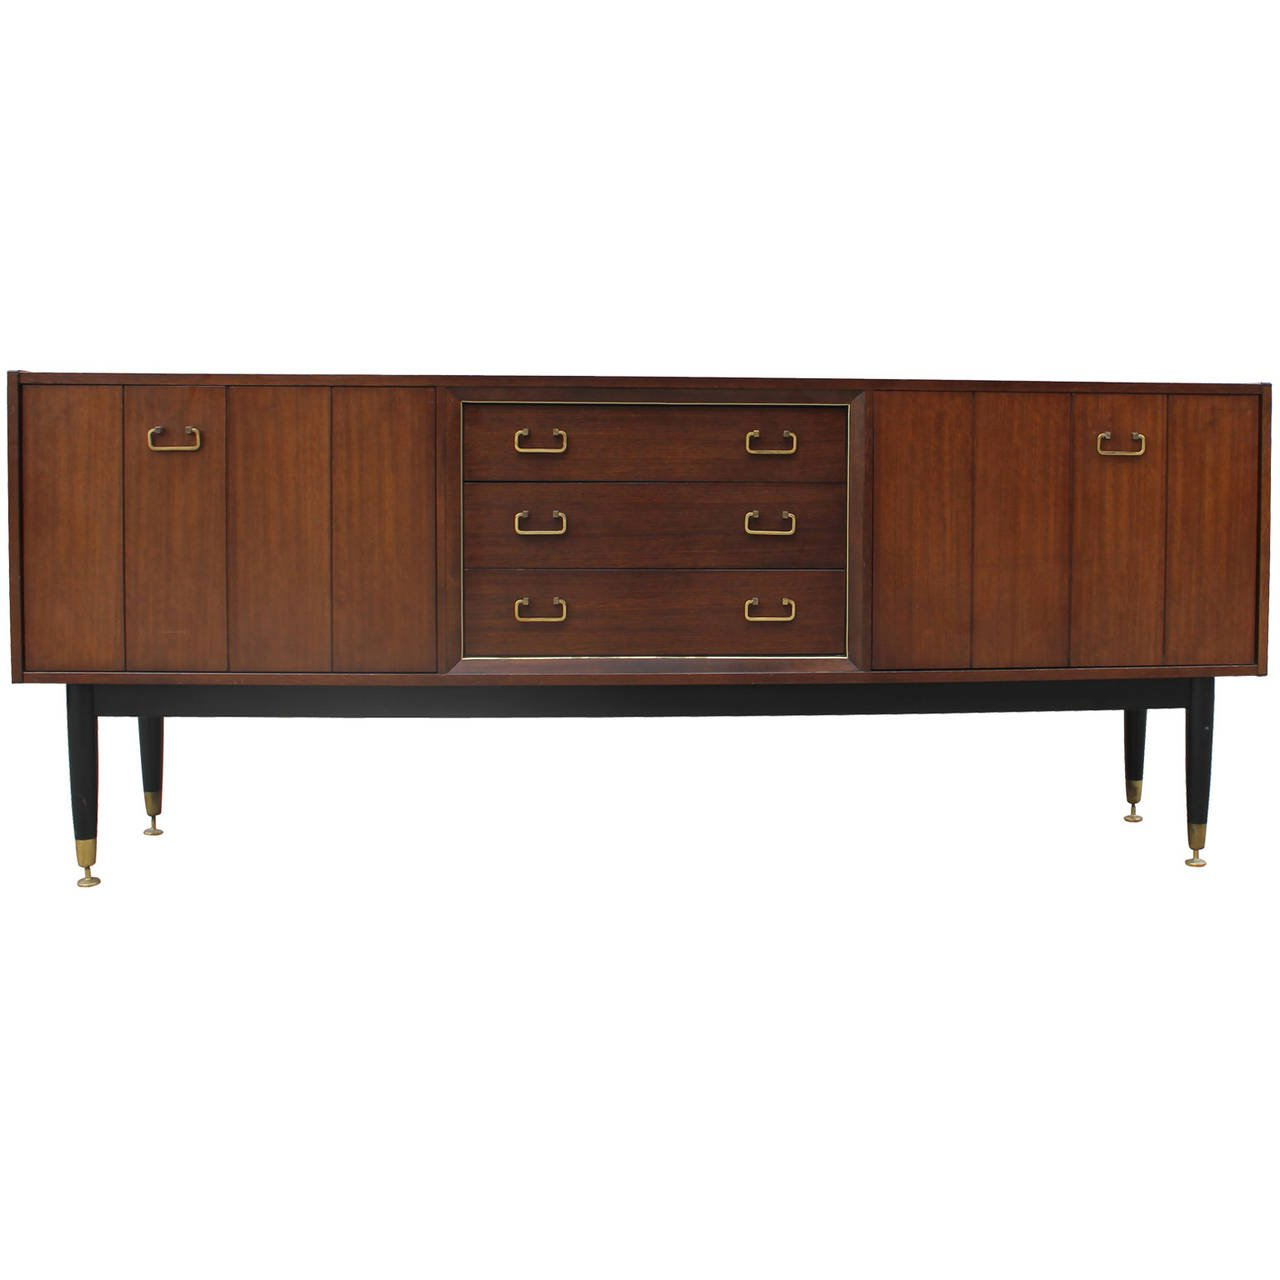 Widely Used Walnut Finish Contempo Sideboards Regarding Mid Century Modern Walnut Sideboard With Brass Hardware For Sale At (View 20 of 20)